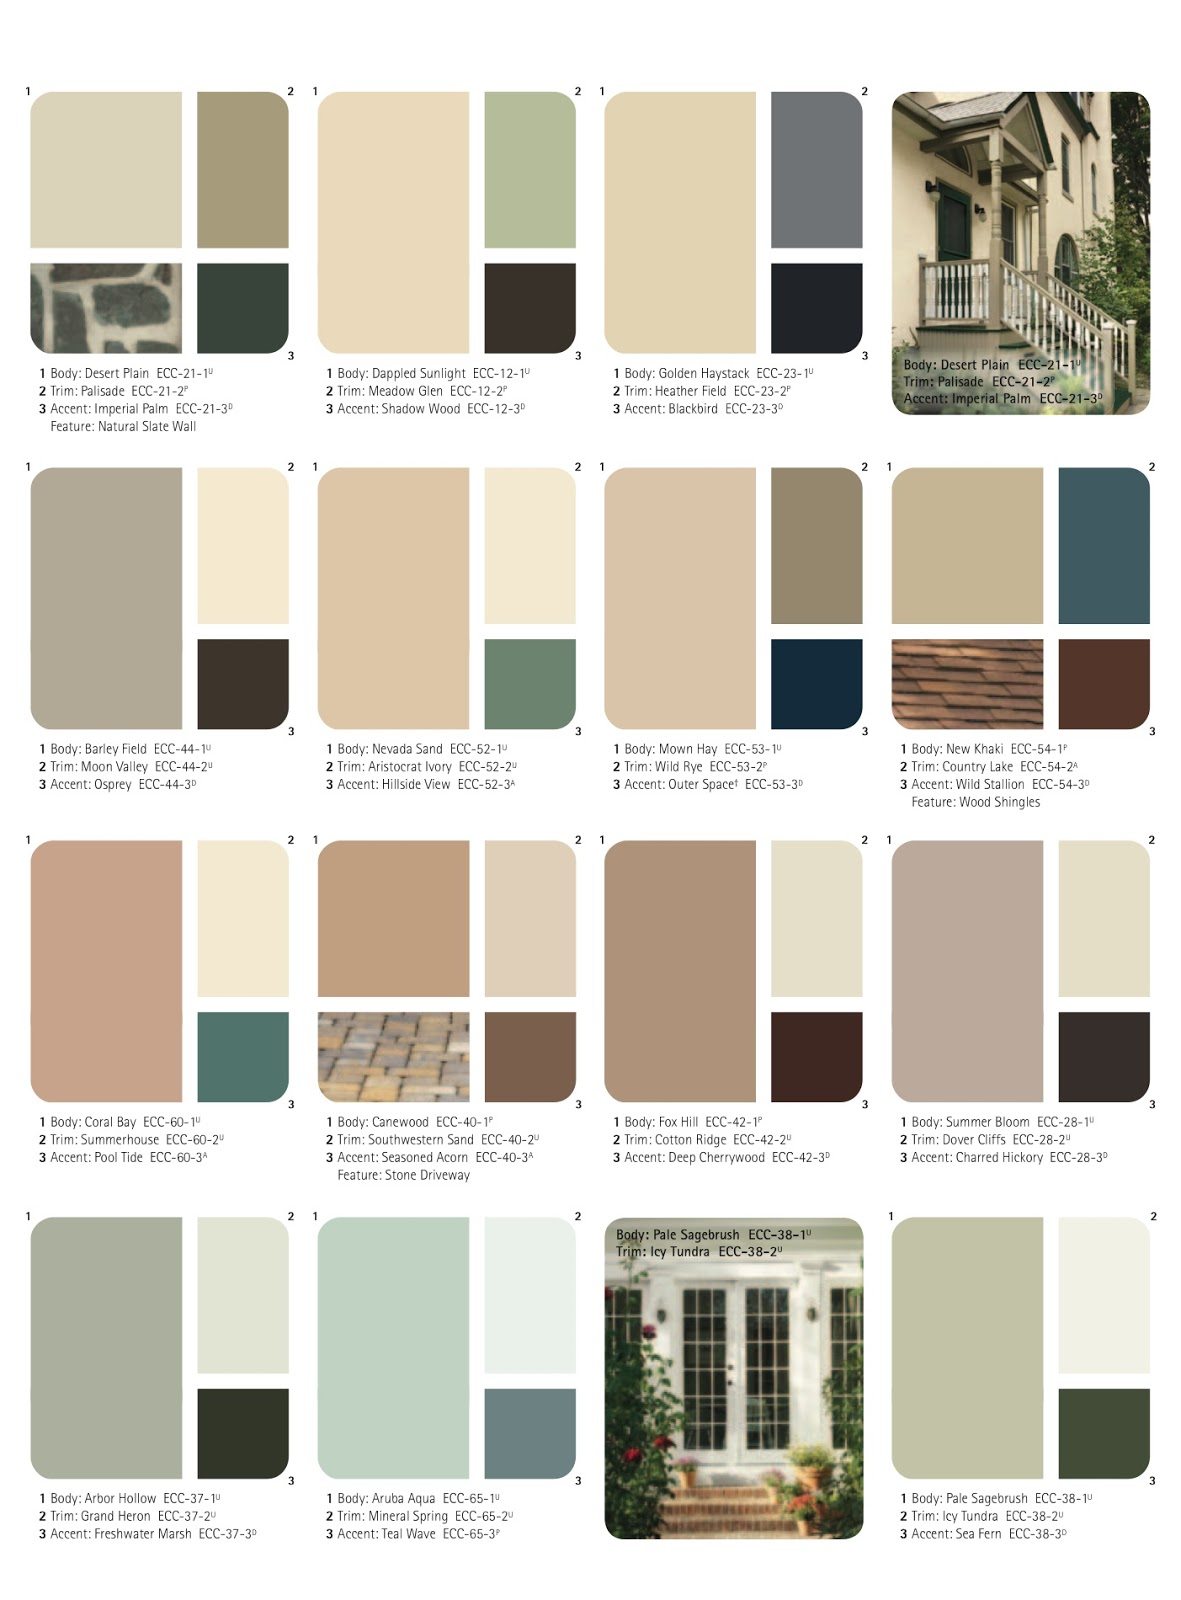 Home depot house paint home painting ideas for House paint color exterior